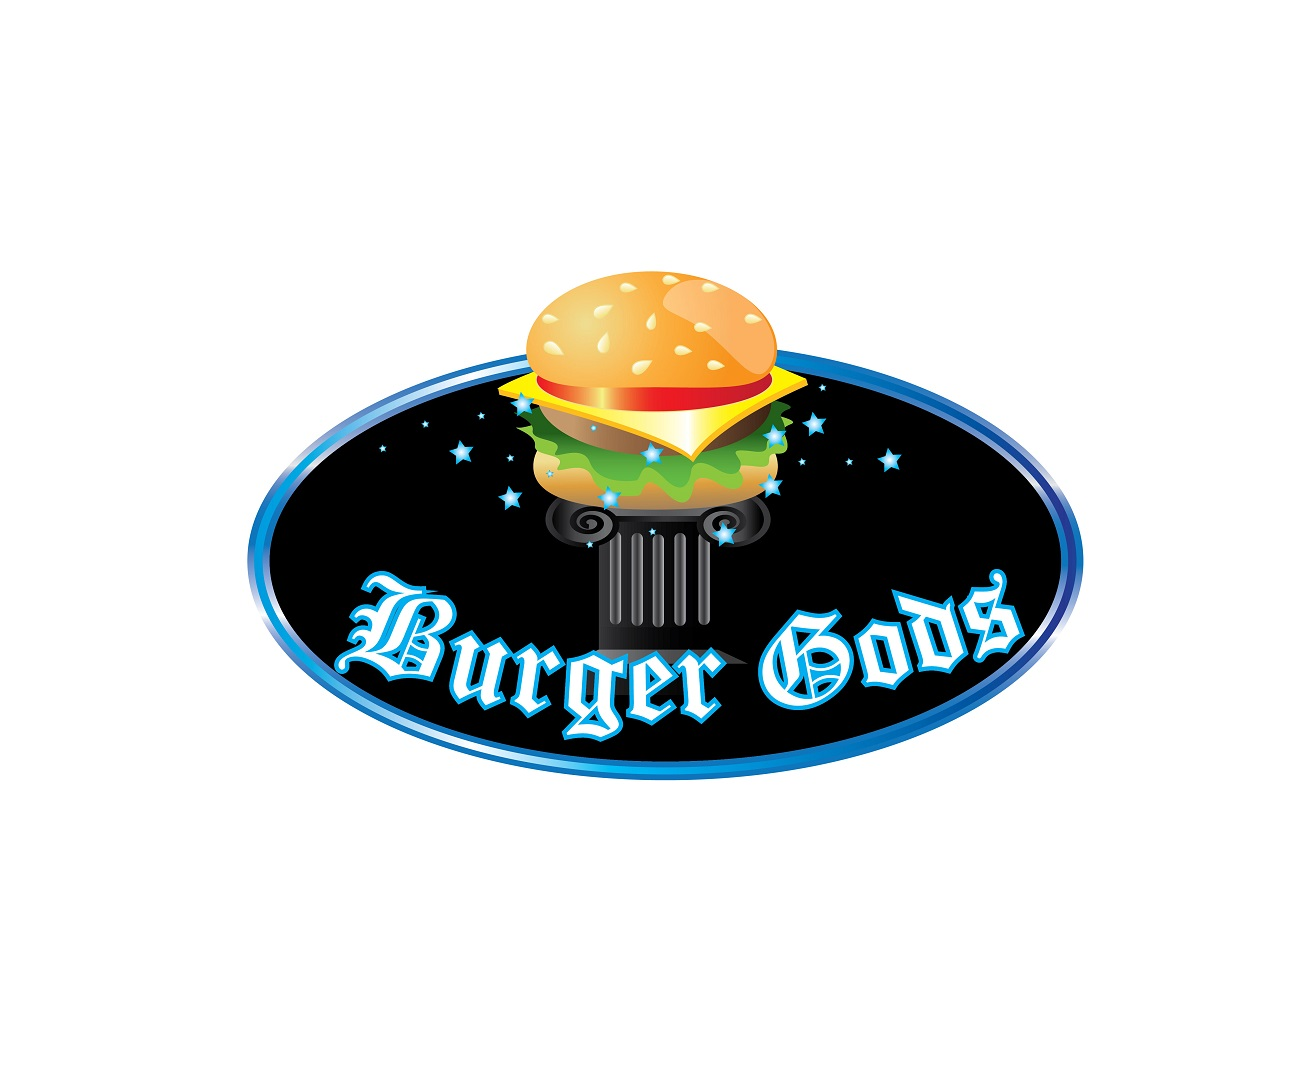 Logo Design by jhunzkie24 - Entry No. 8 in the Logo Design Contest Inspiring Logo Design for Burger Gods.